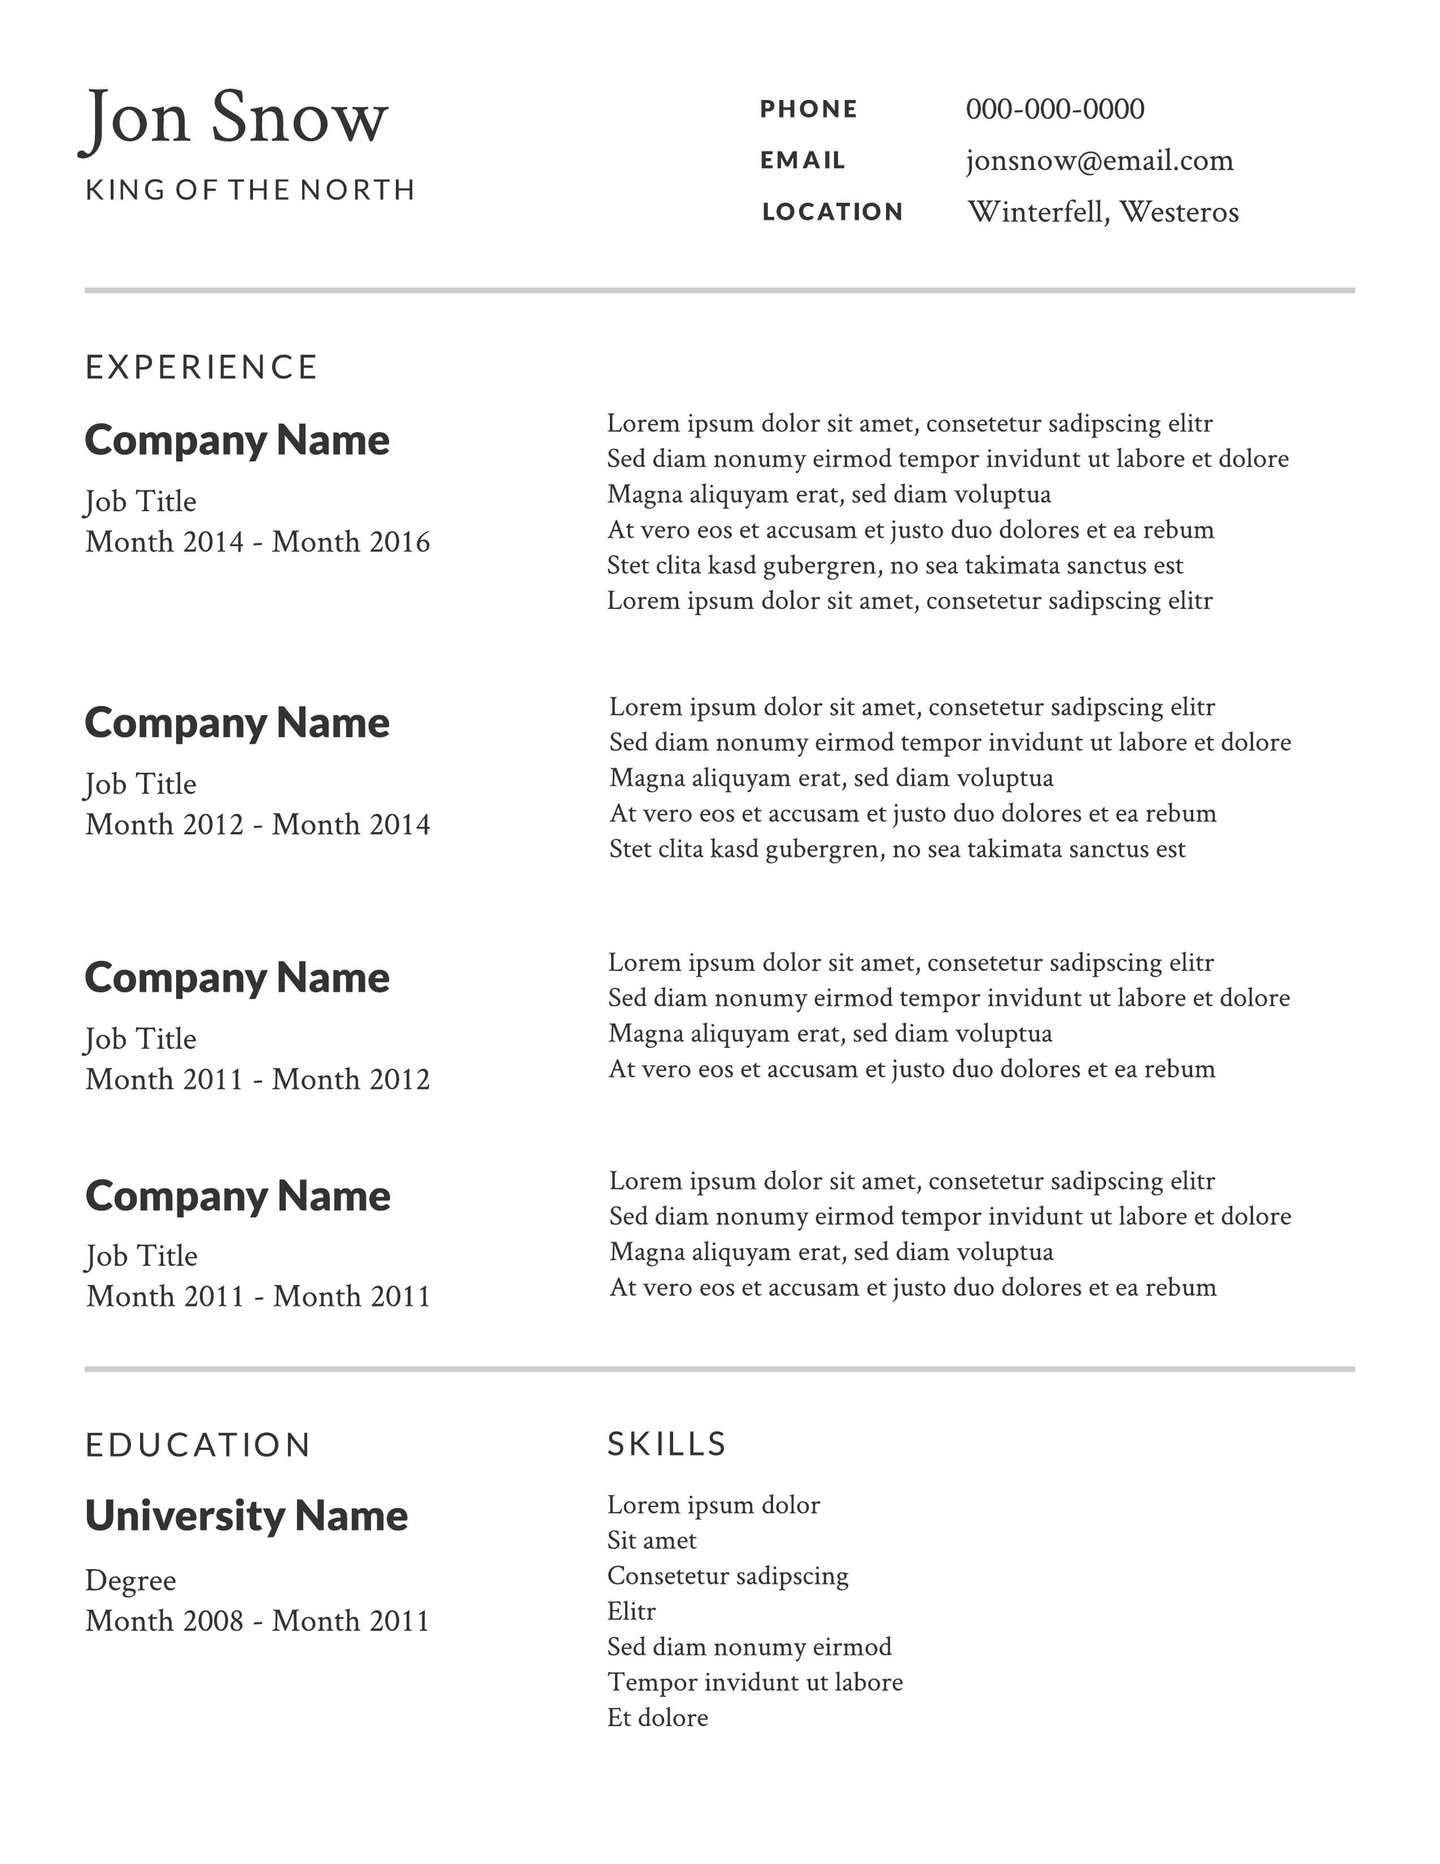 free professional resume template - Free Resume Samples Online